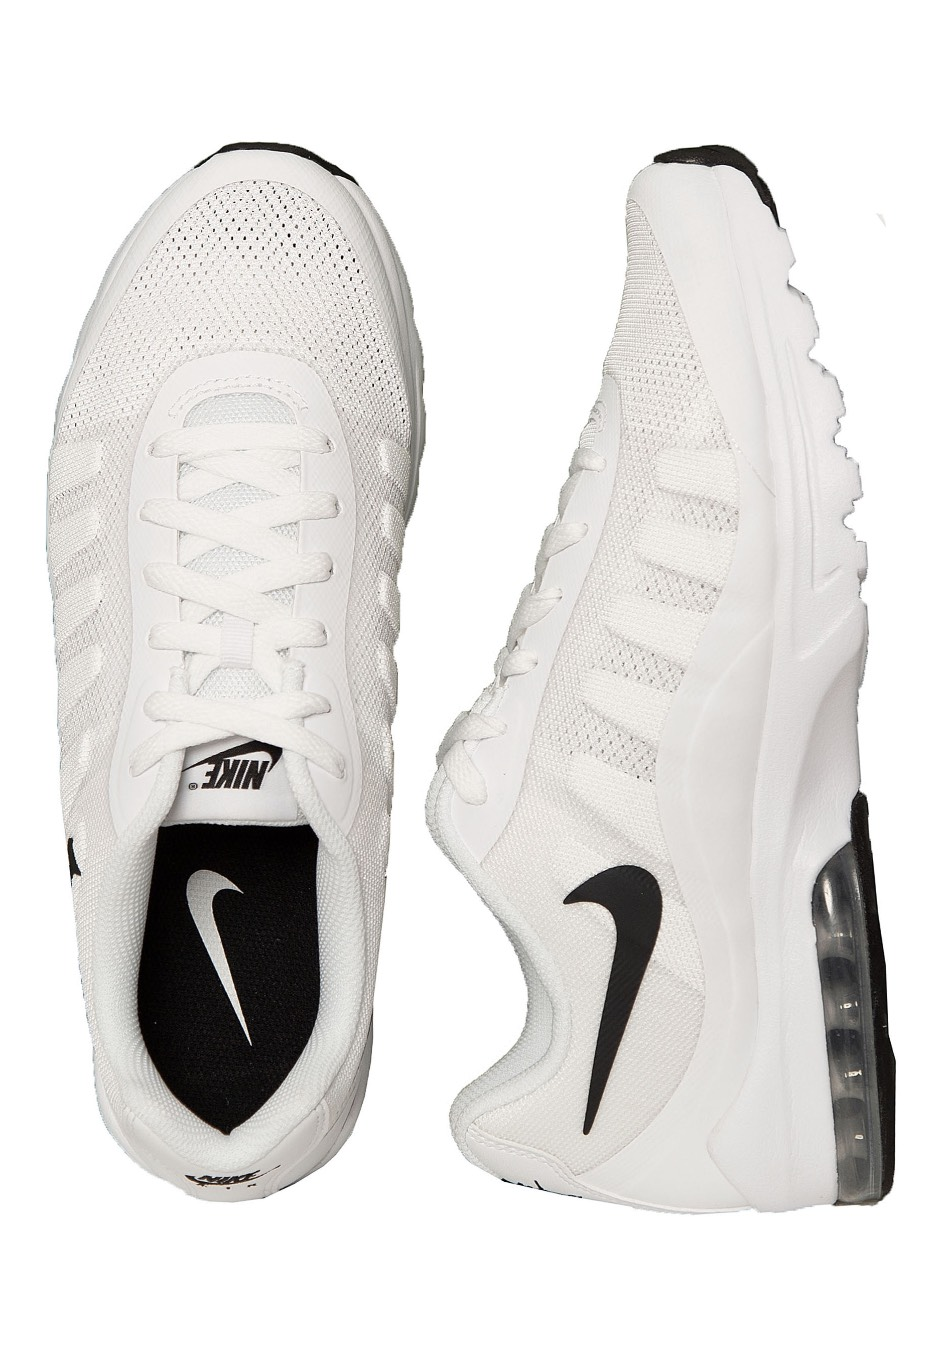 cf6e38b1d2 Nike - Air Max Invigor White/Black - Shoes - Impericon.com AU